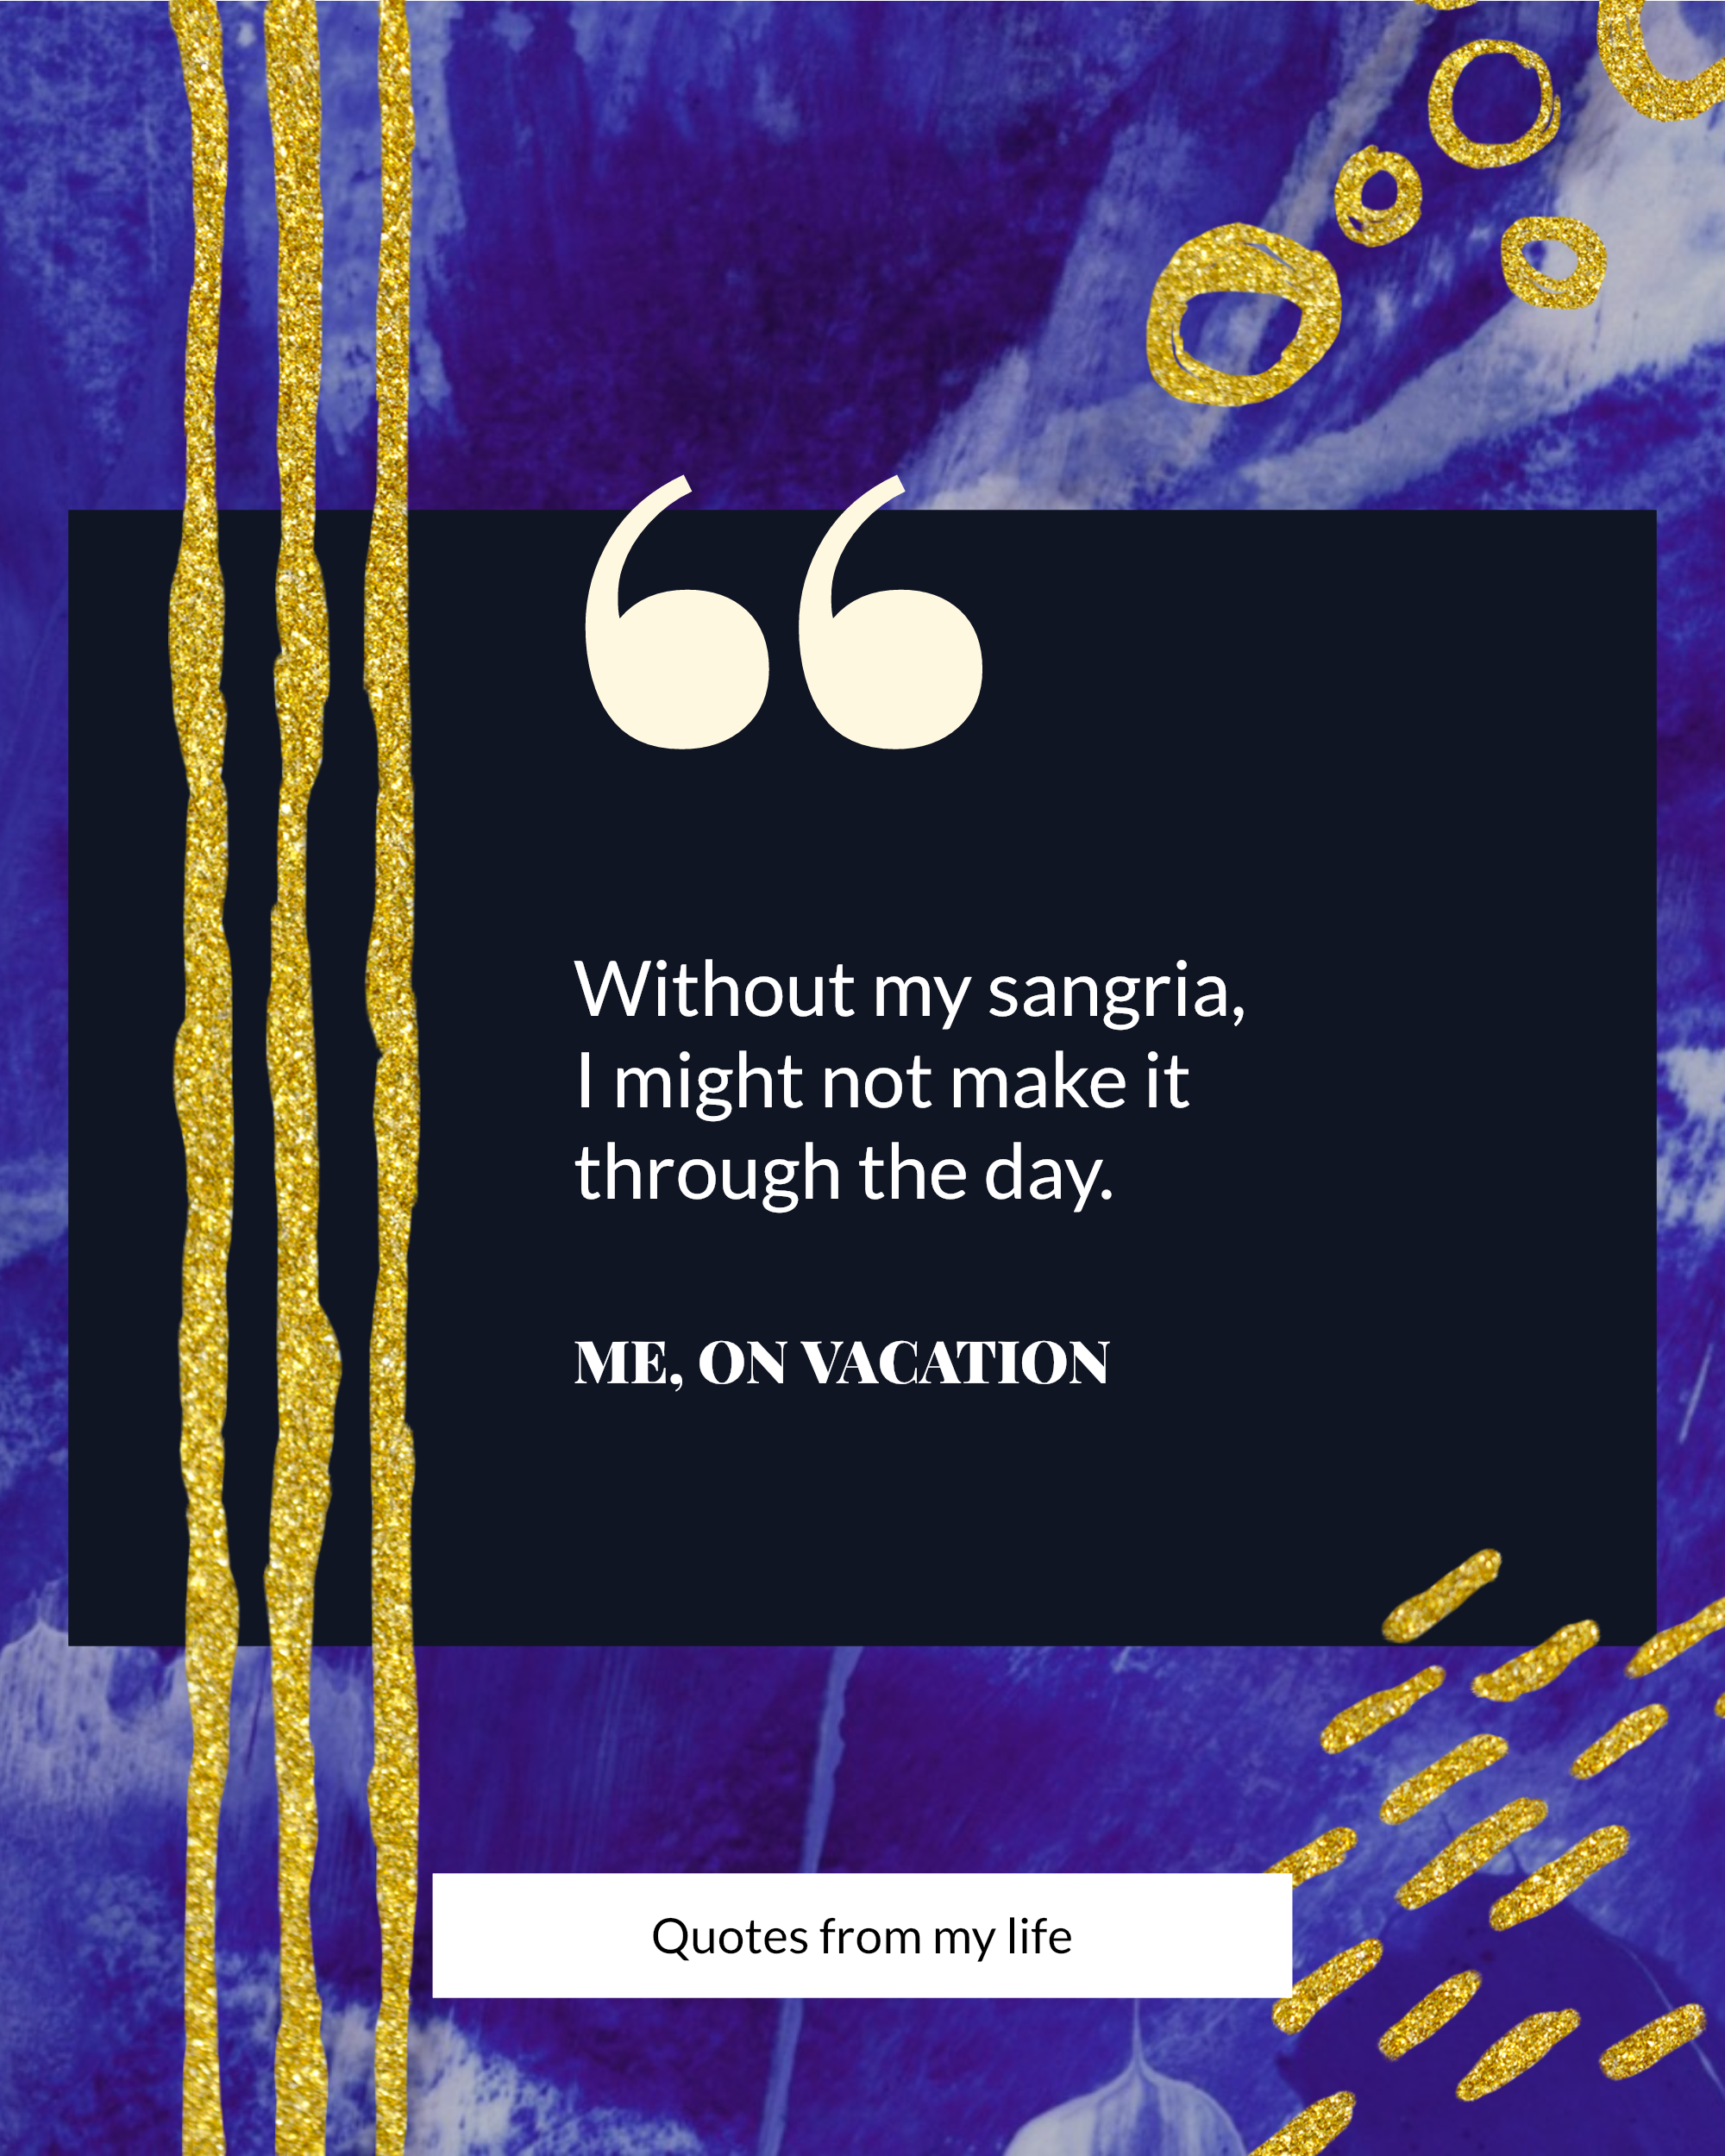 "#bluegold Post collection - "" Without my sangria, I might not make it through the day. ME, ON VACATION Quotes from my life Instagram Post Template"